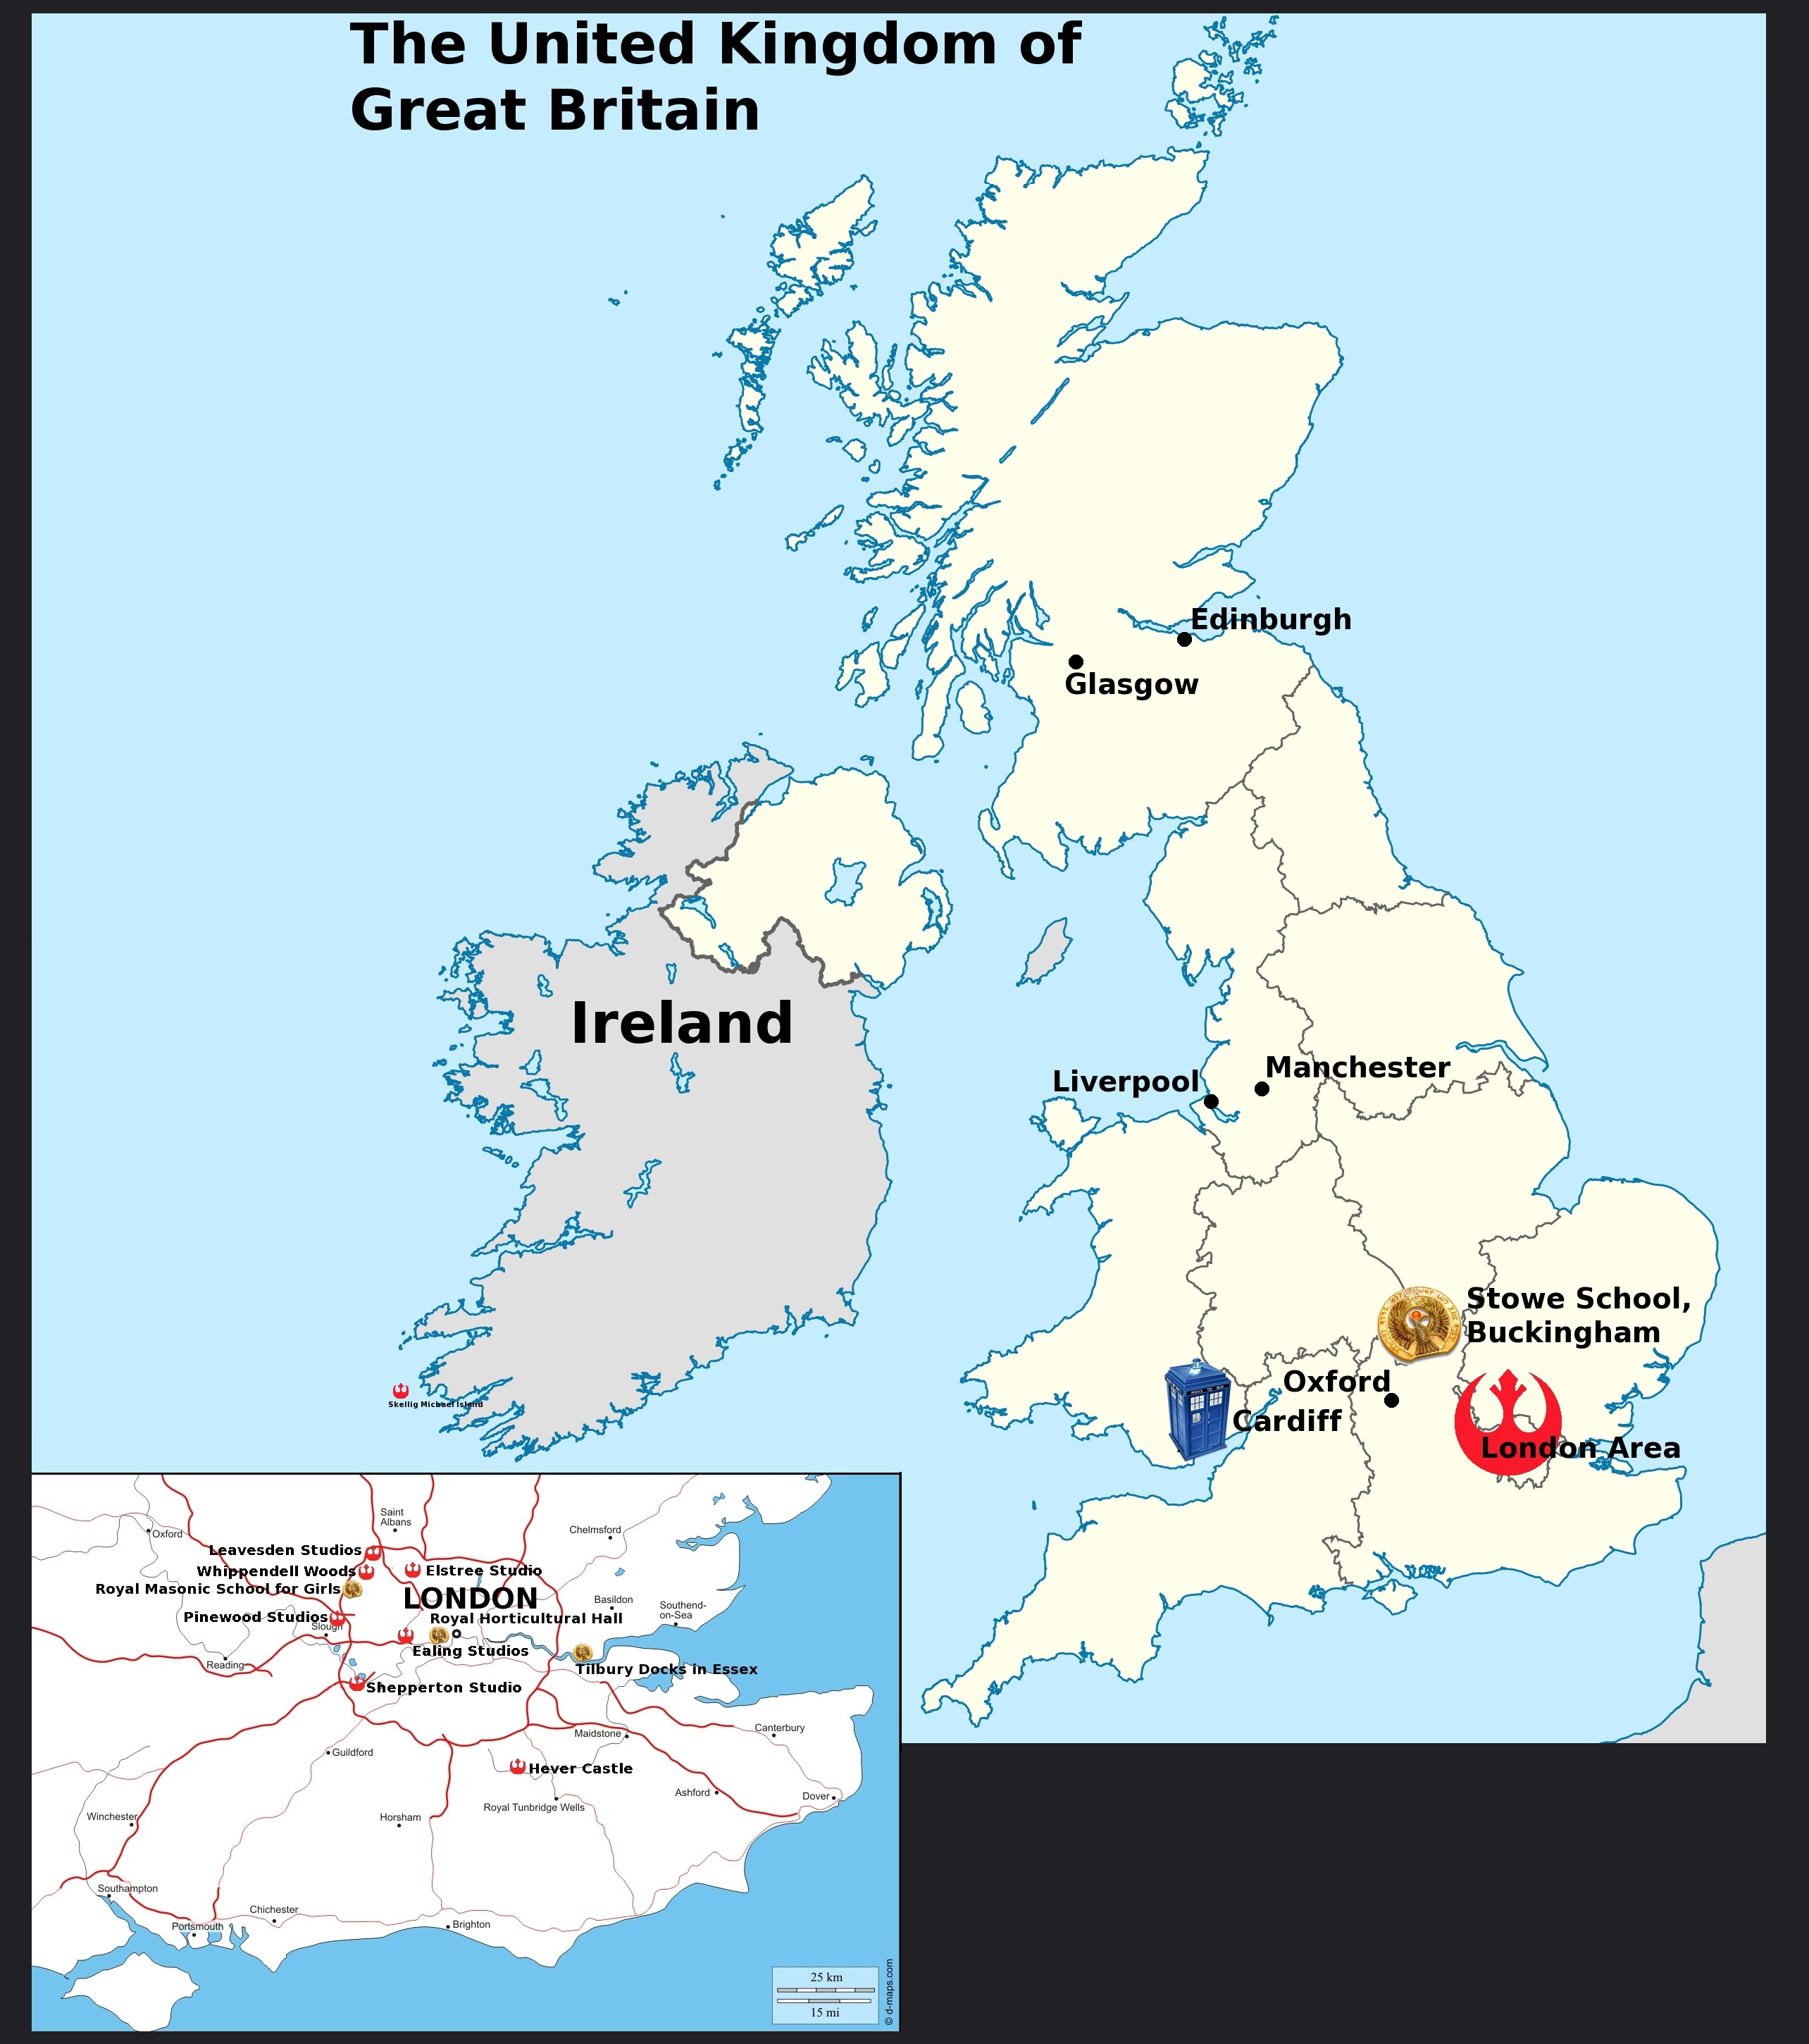 Map of the United Kingdom showing the shooting location and other important destinations.